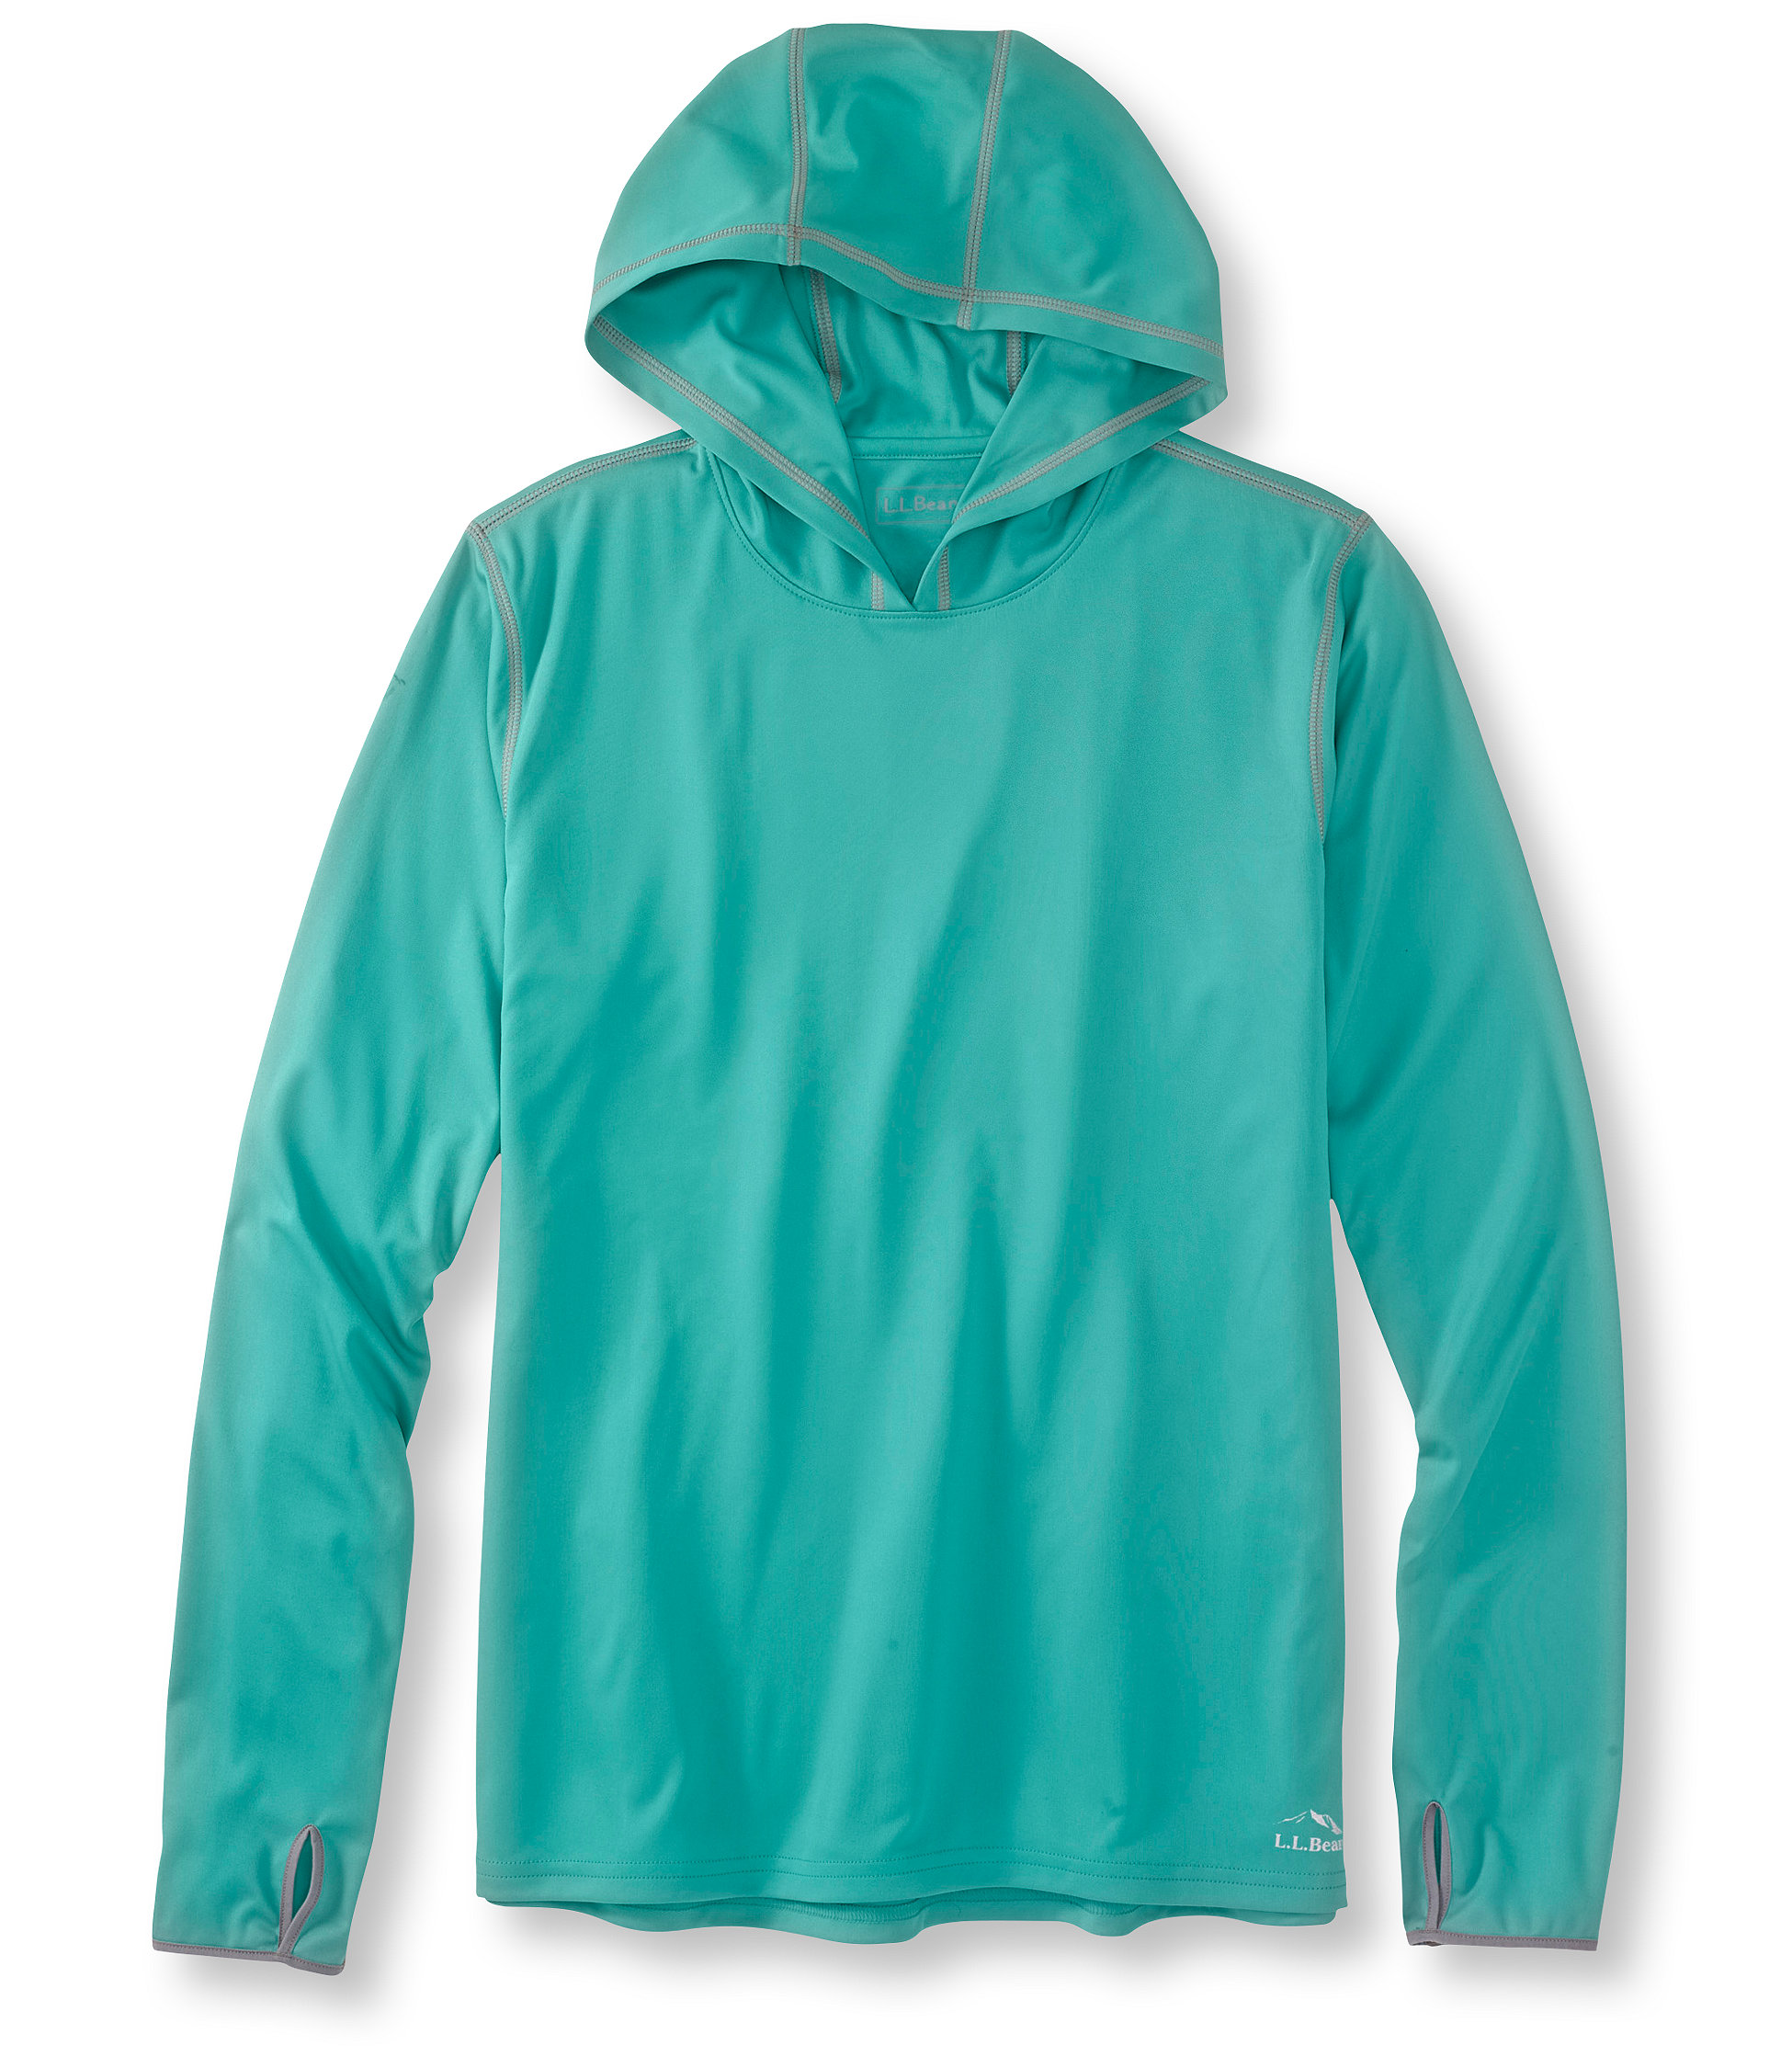 L.L.Bean No Fly Zone Hoodie